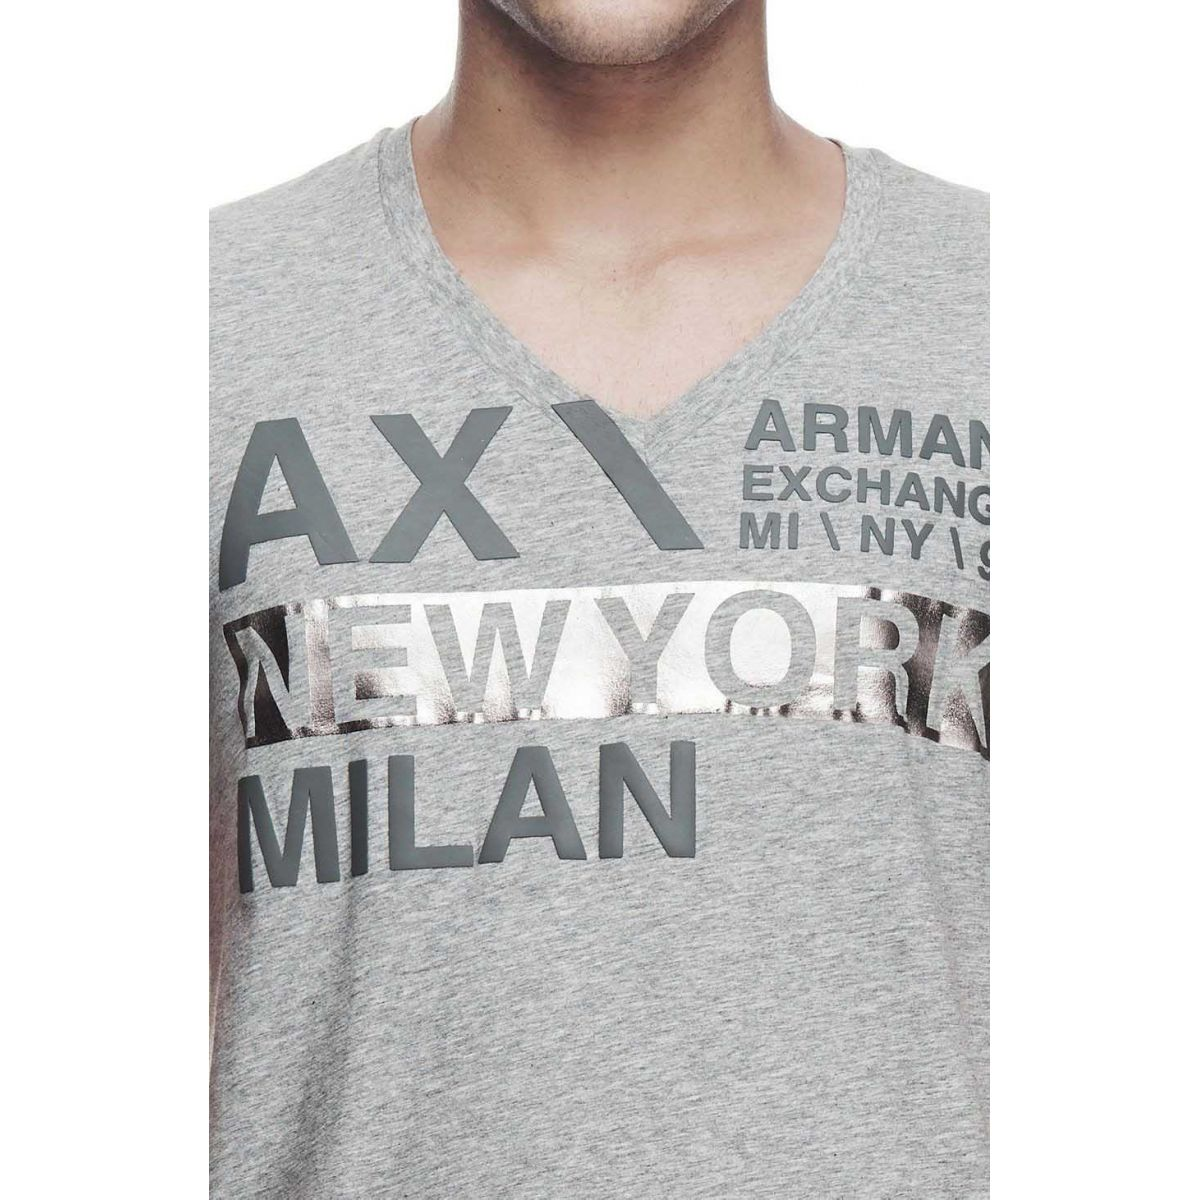 330545d4e0a Camiseta Armani Exchange Box Logo Cinza Armani Exchange Camiseta ...